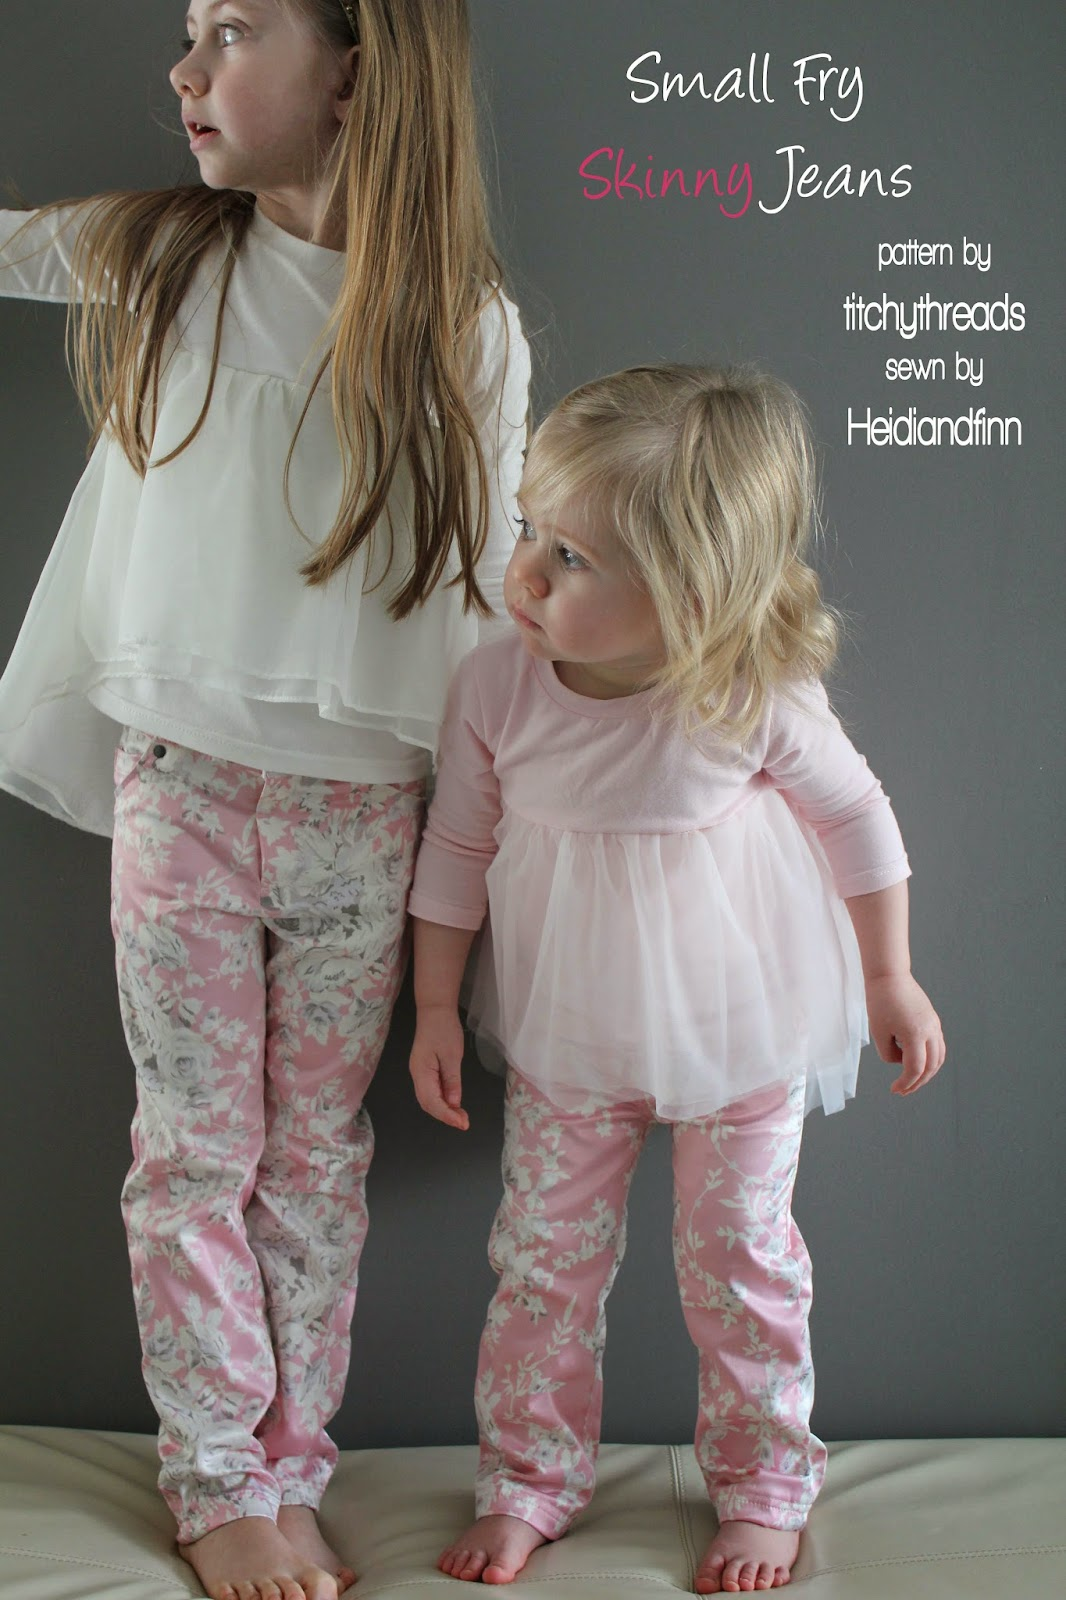 Heidiandfinn modern wears for kids small fry skinny jeans tour thursday march 13 2014 jeuxipadfo Choice Image